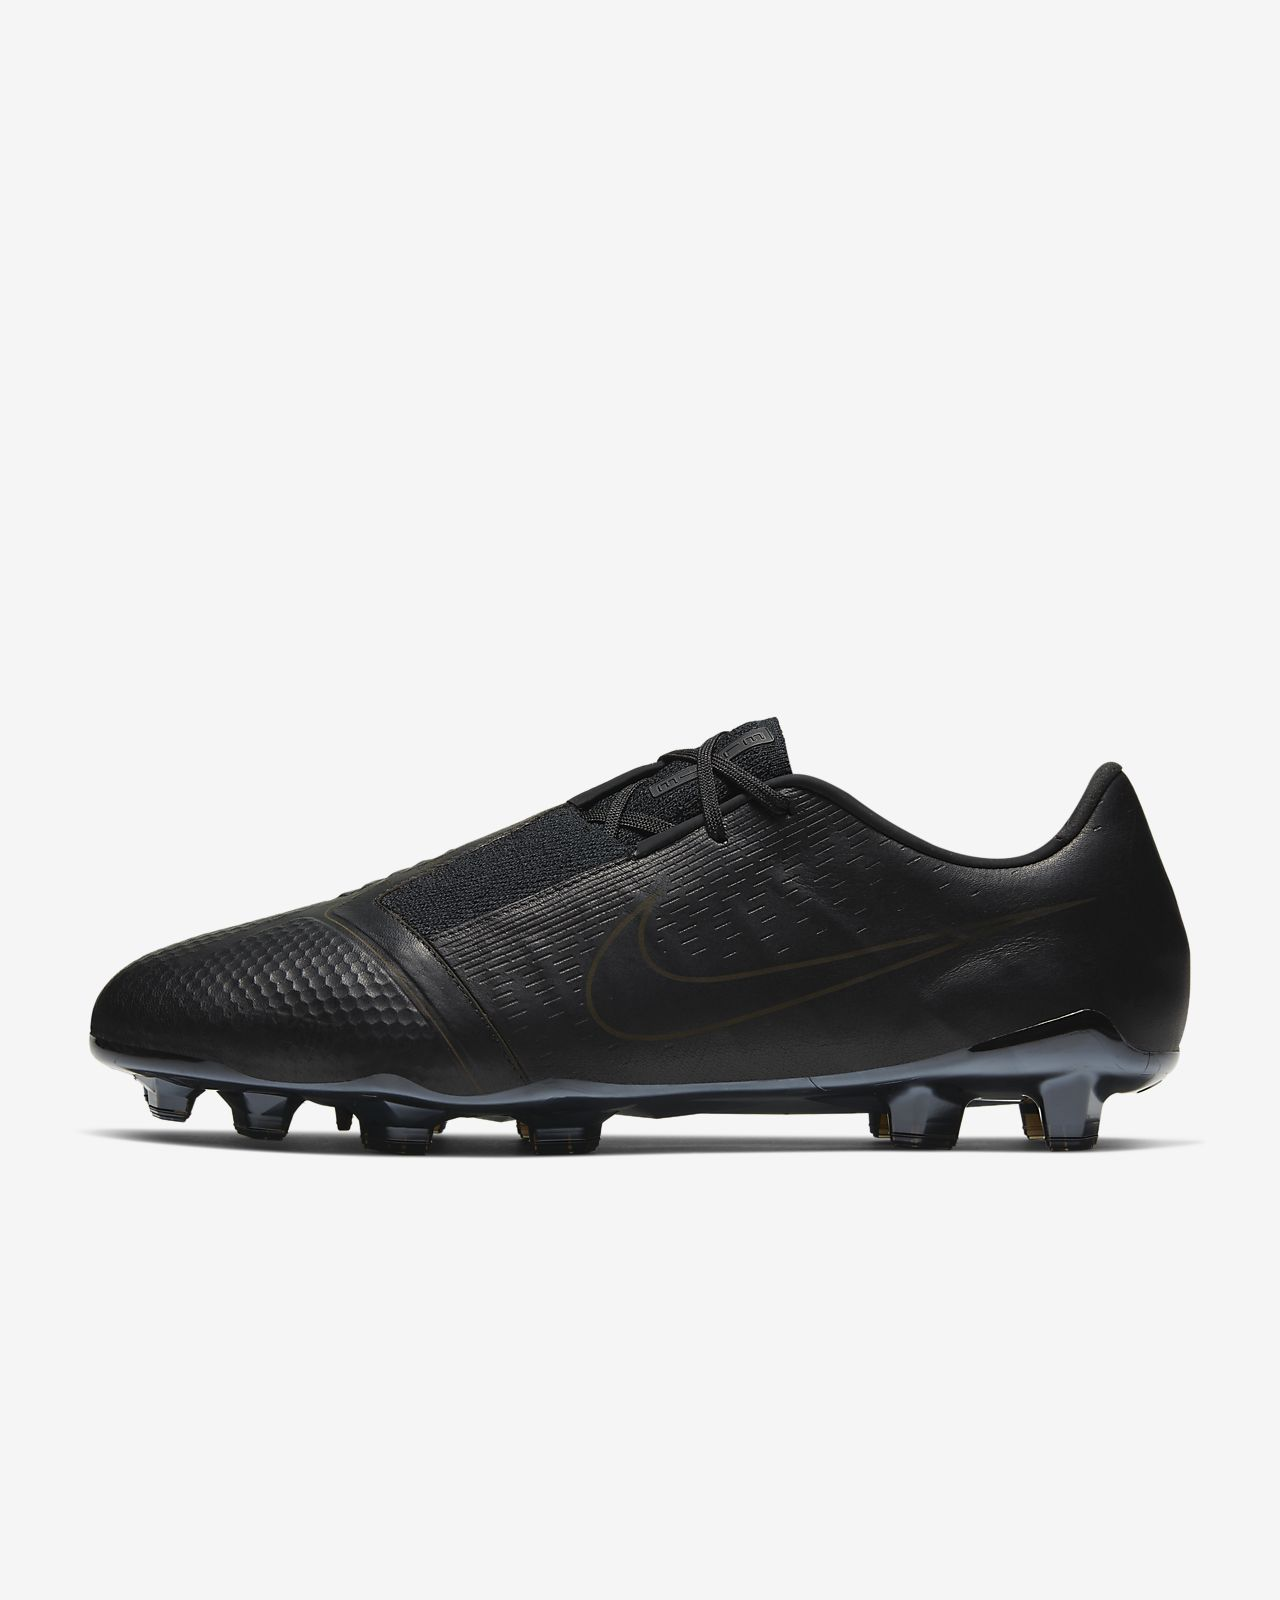 Nike PhantomVNM Elite Tech Craft FG Firm-Ground Football Boot